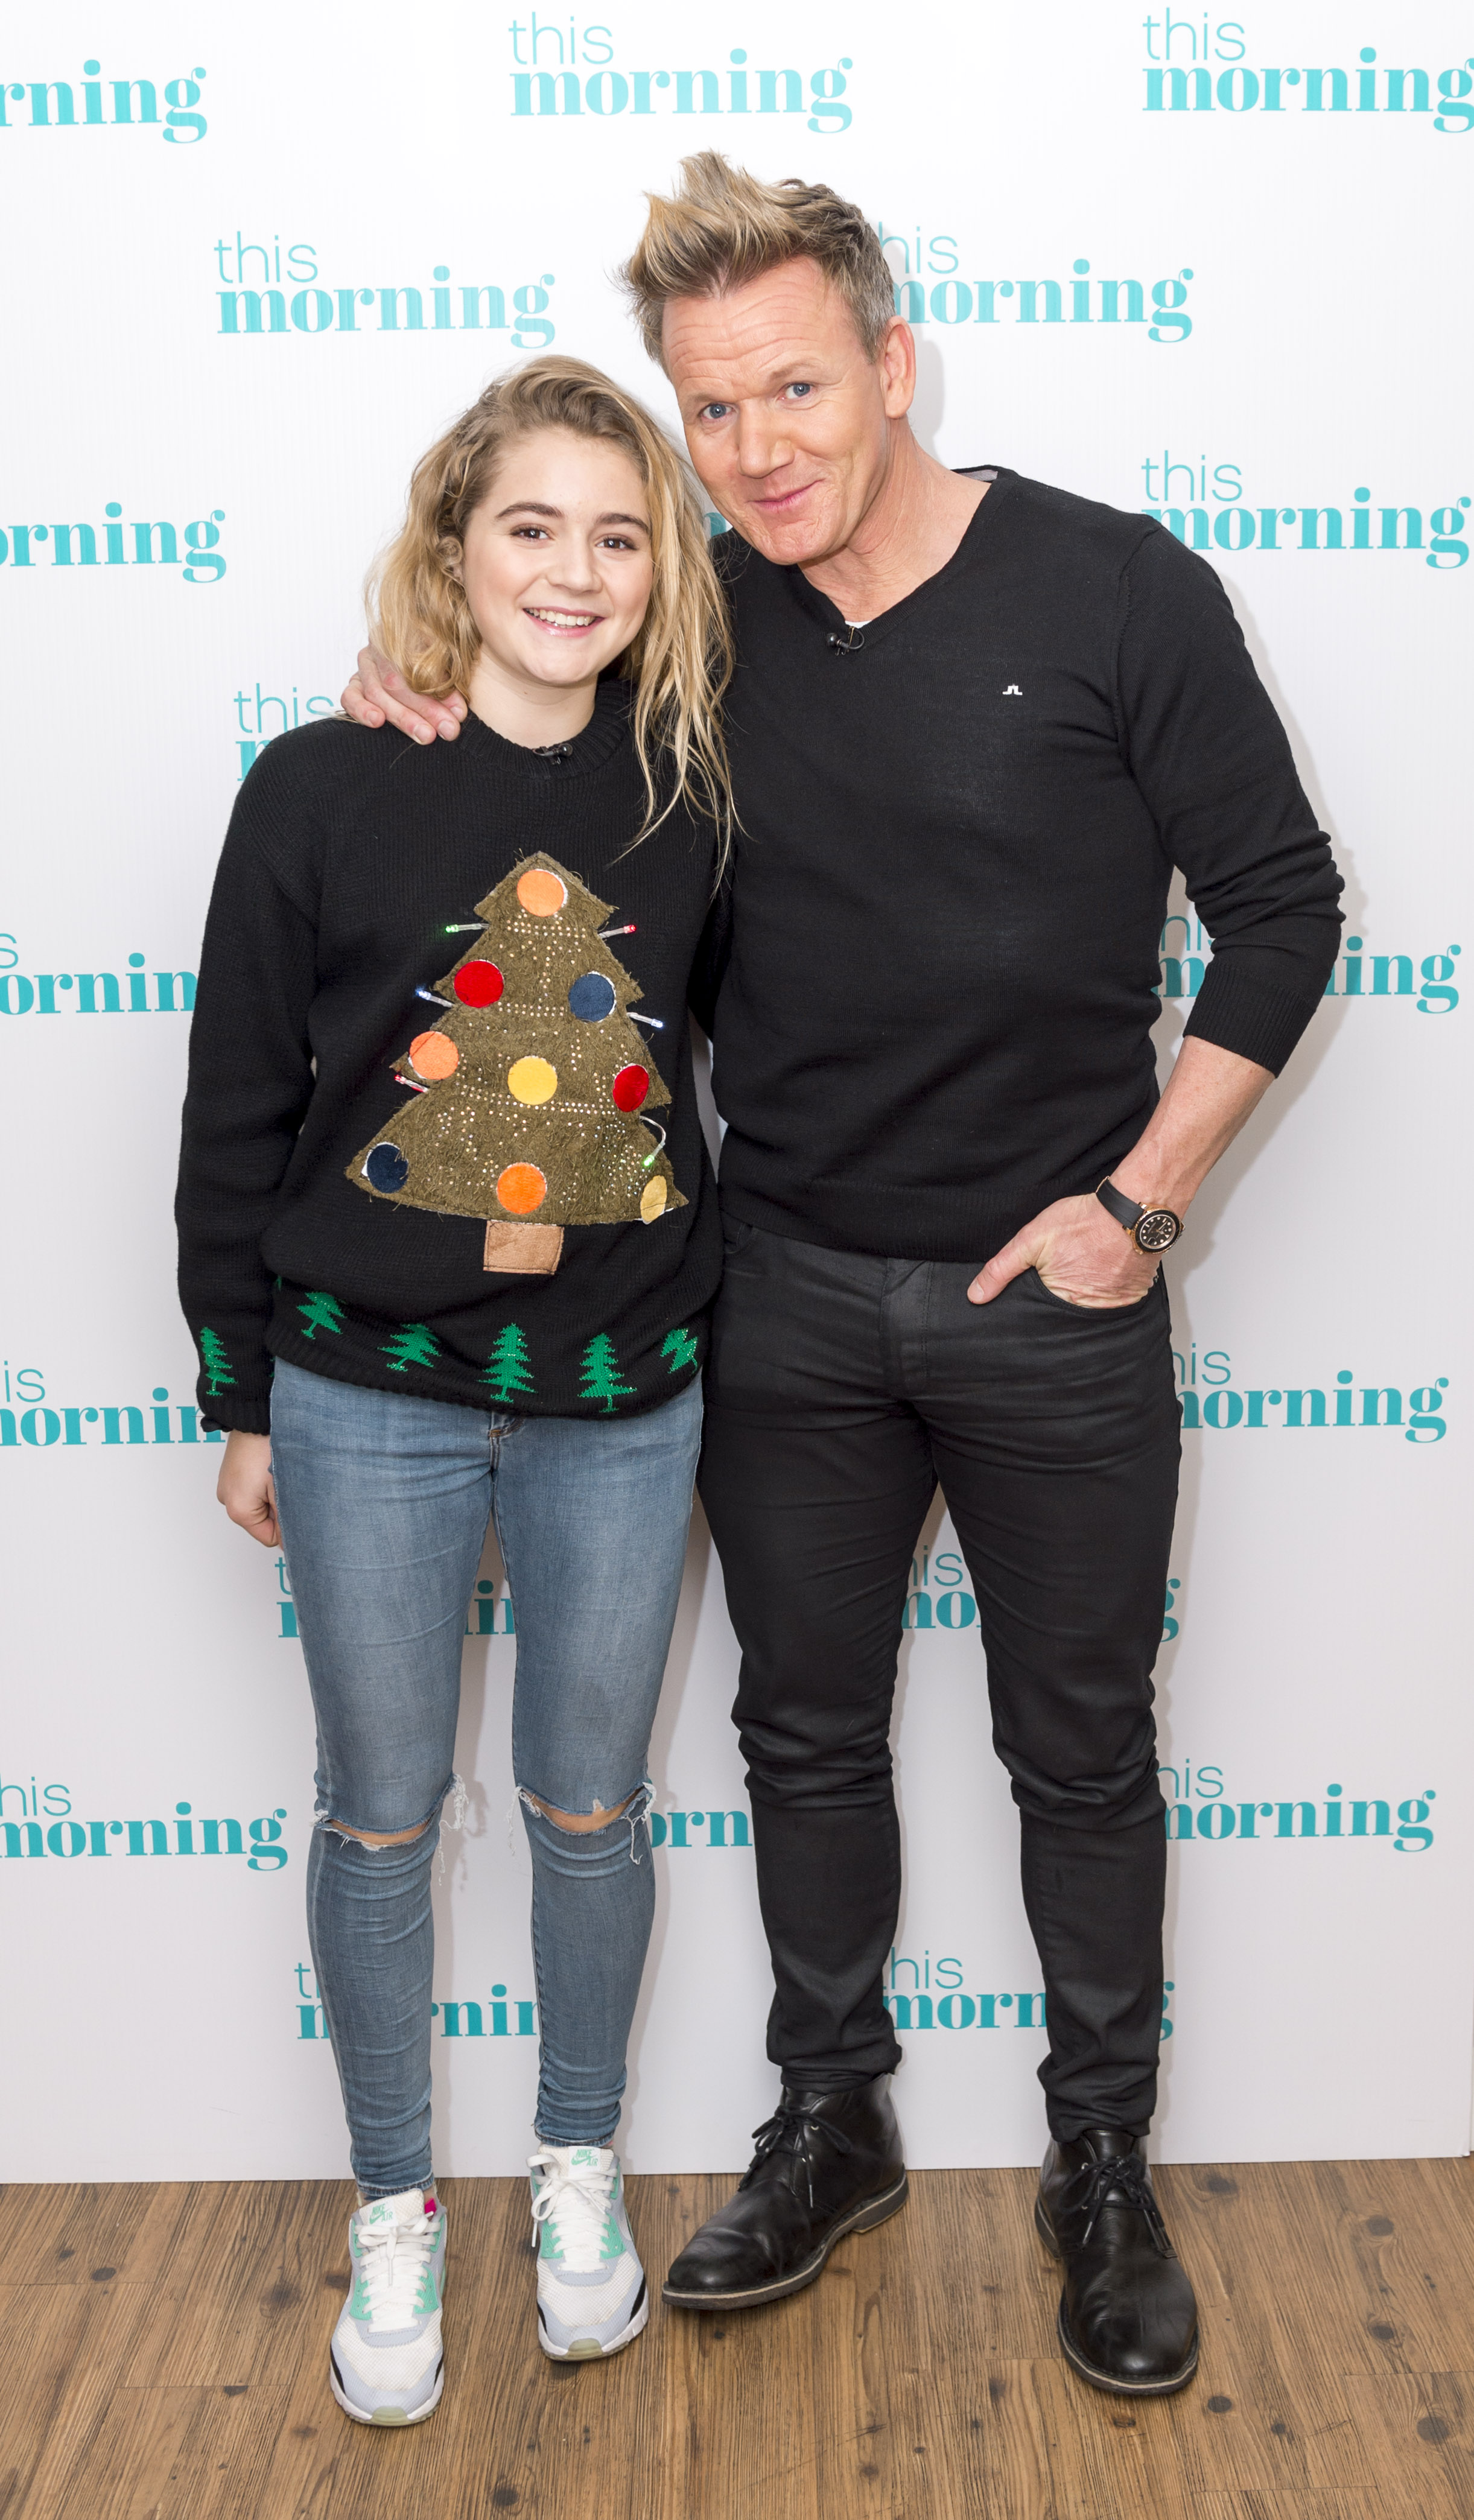 Gordon Ramsay Shares Adorable Video Dancing in the Kitchen With 17-Year-Old Daughter Matilda